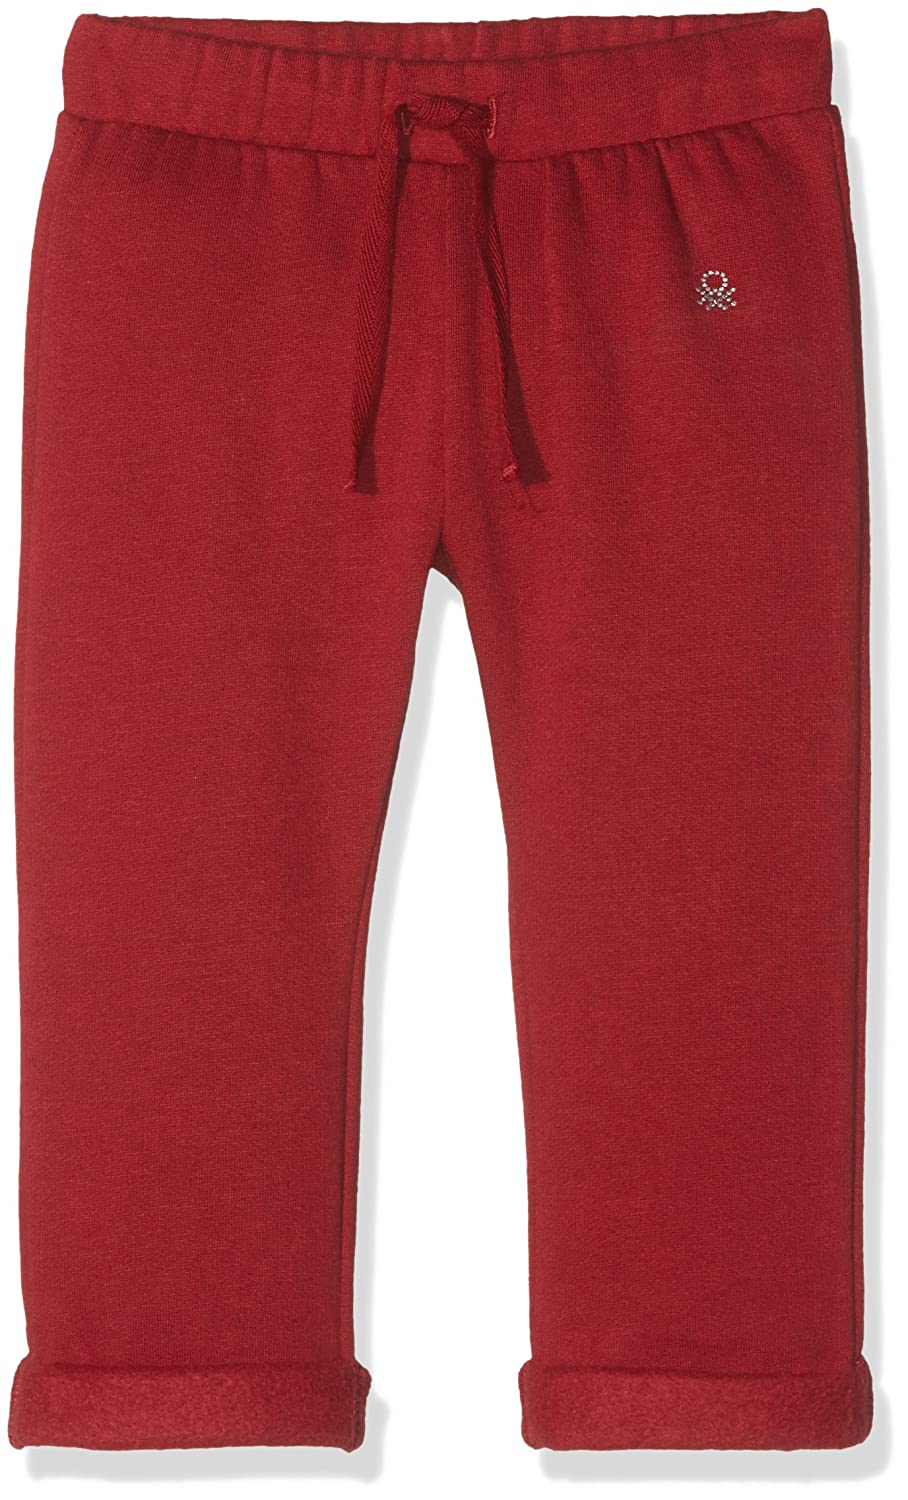 United Colors of Benetton Girl's Trousers Cotton Blend 3GW0I0615